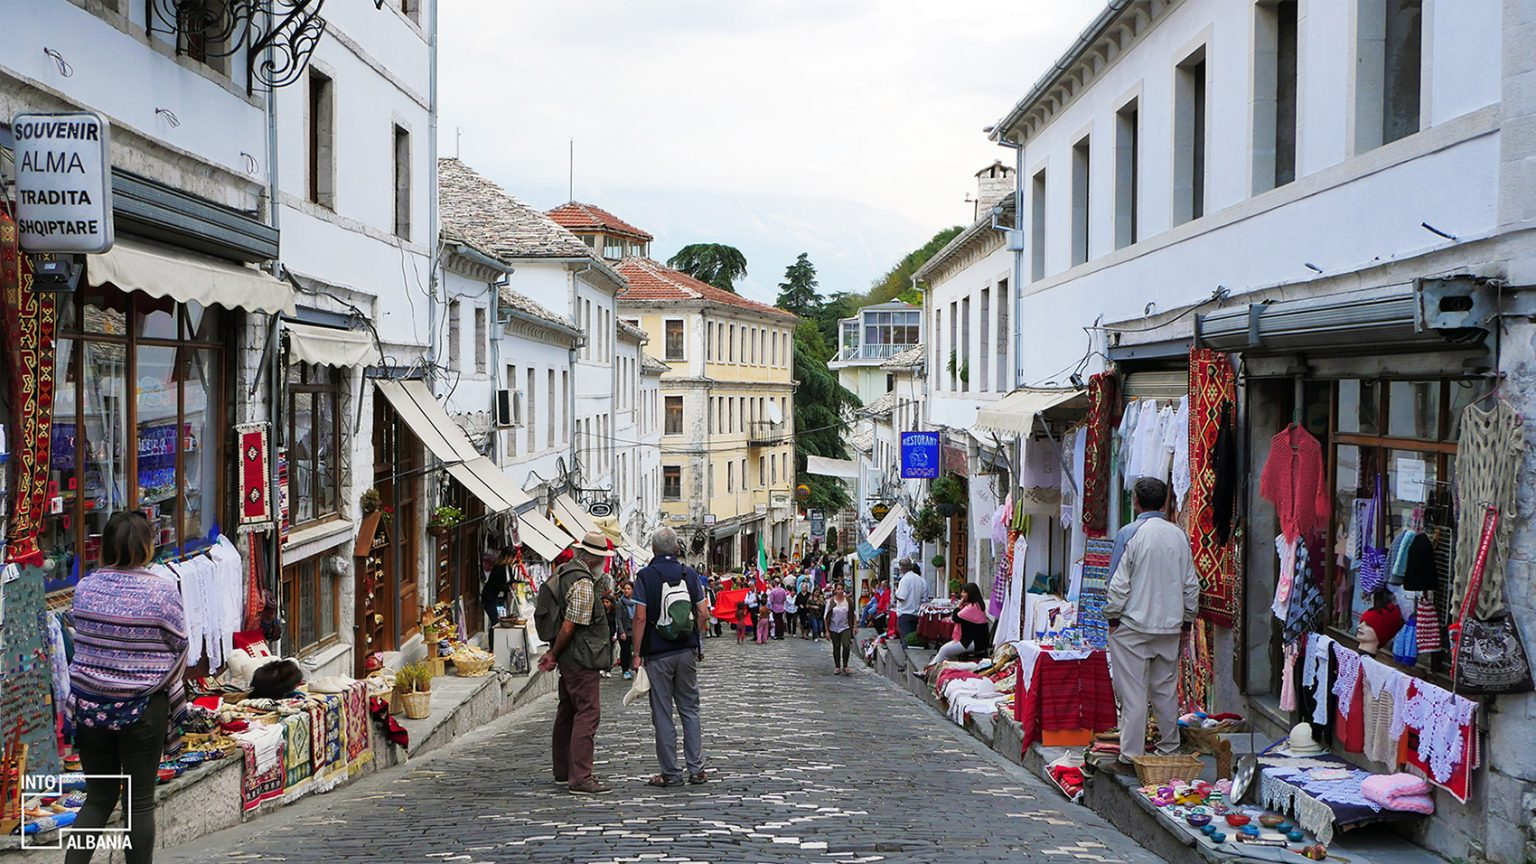 Gjirokastra Bazaar, photo by IntoAlbania